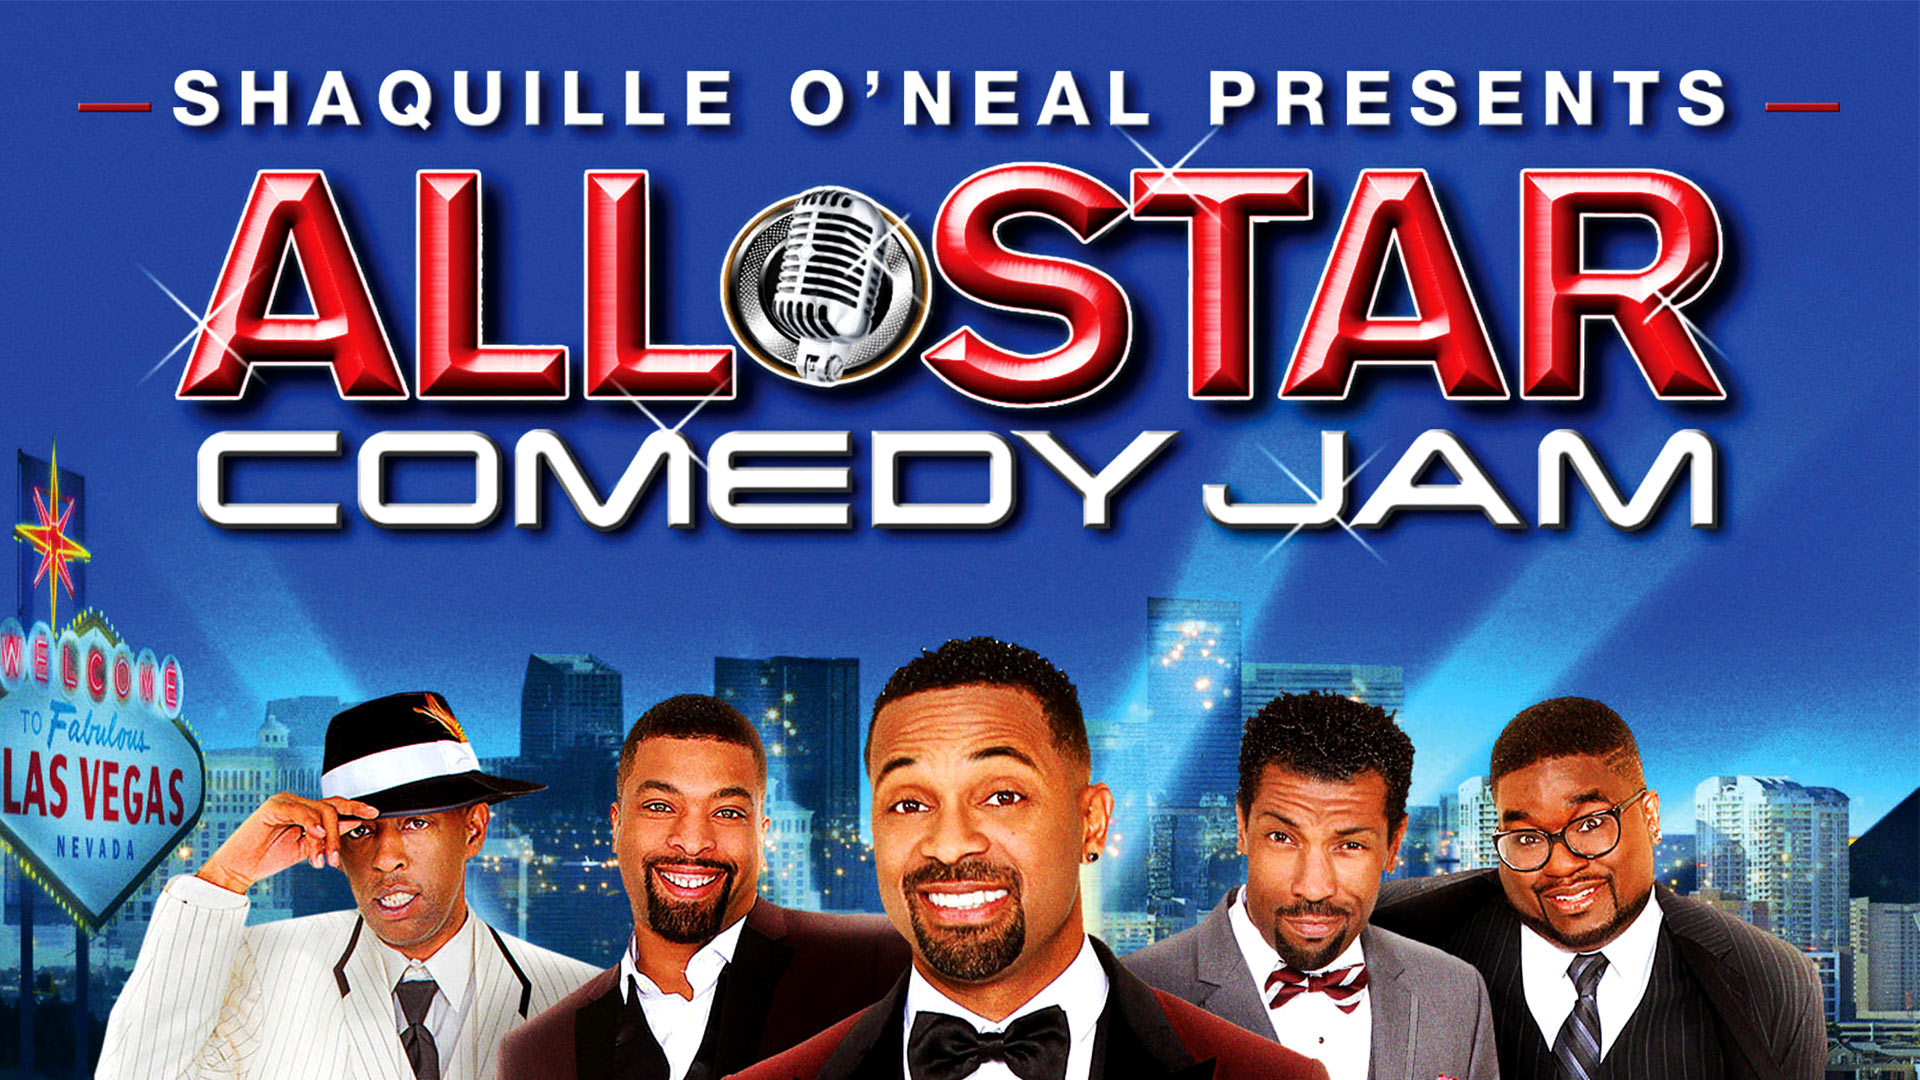 Shaquille O'Neal Presents: All Star Comedy Jam - Live From Las Vegas